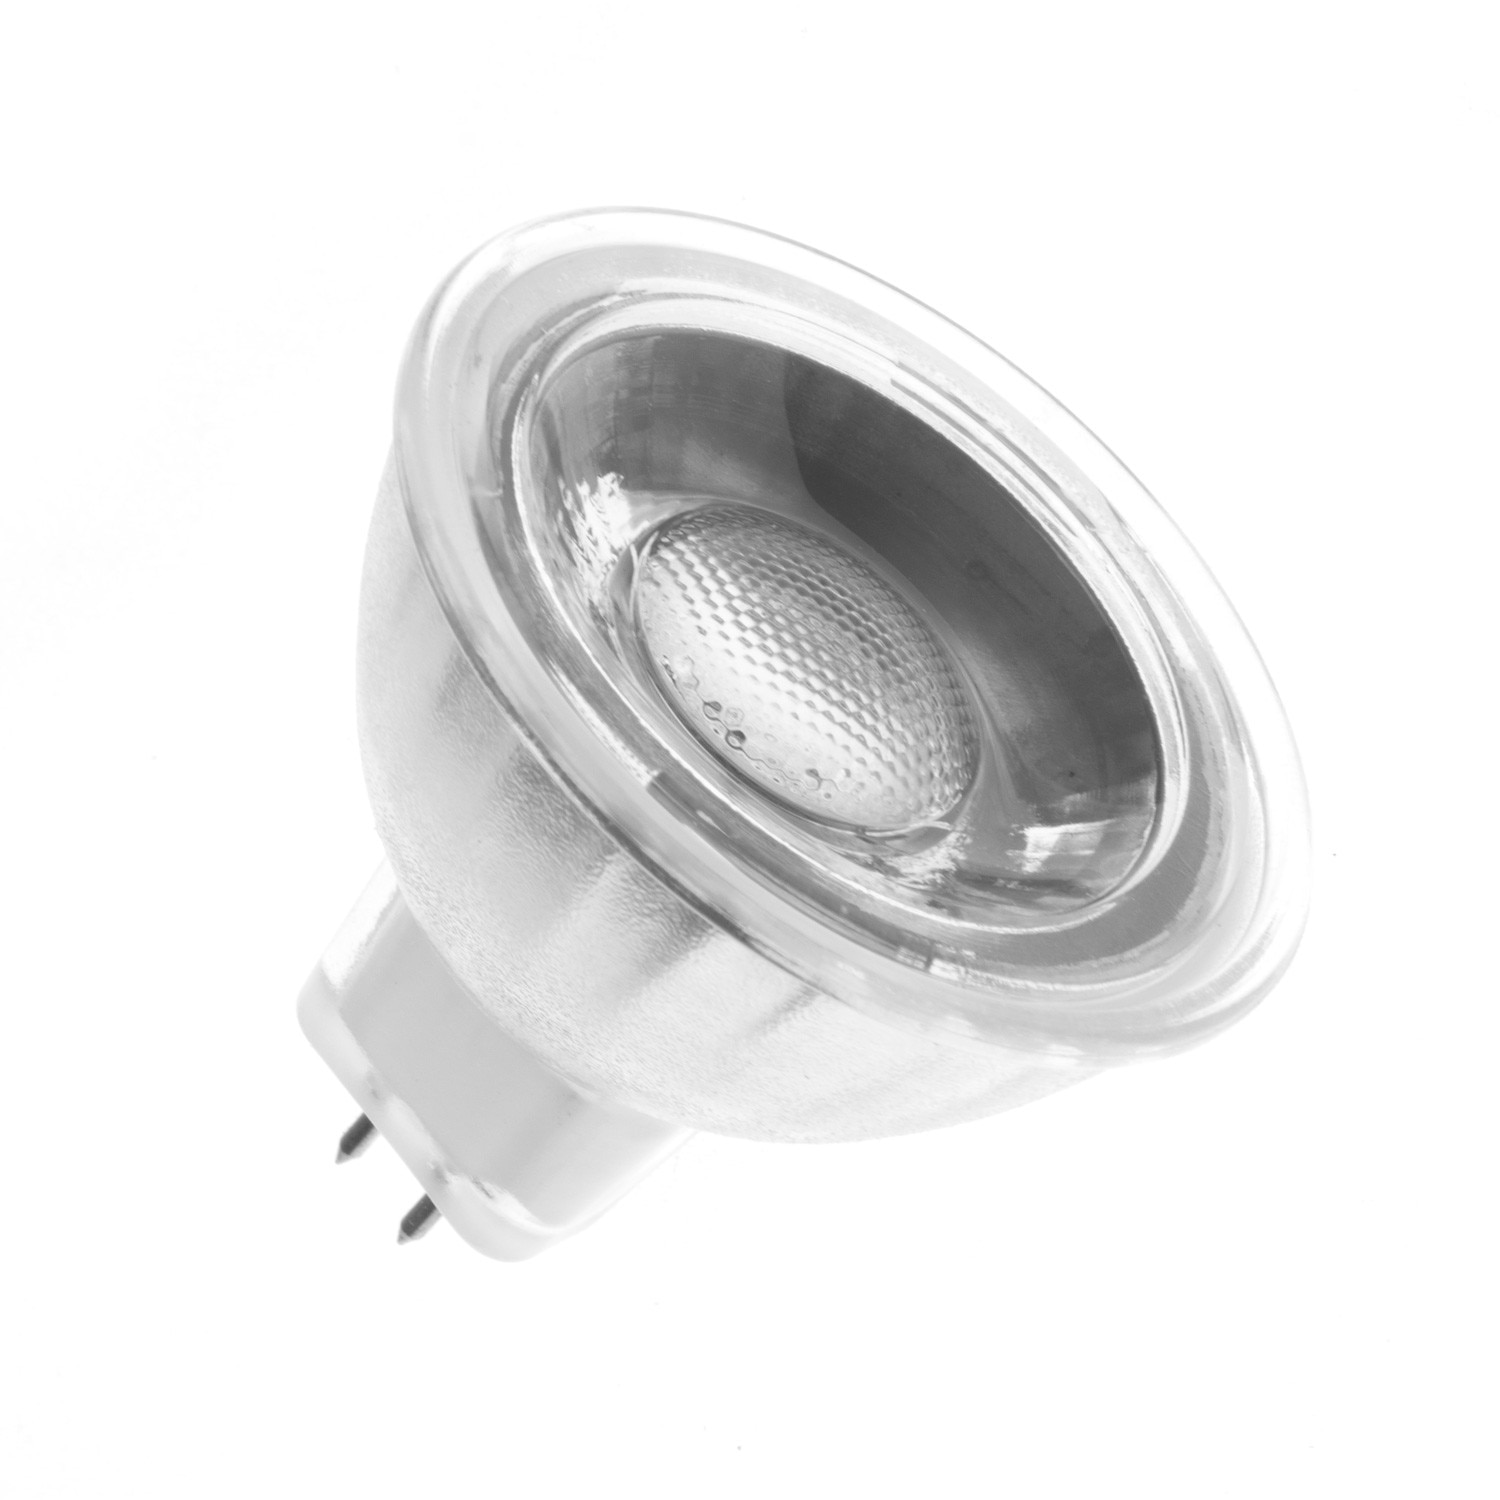 ??led Glass Gu5 3 Mr16 45º 5w Cob Led Lamp 220v Ledkia